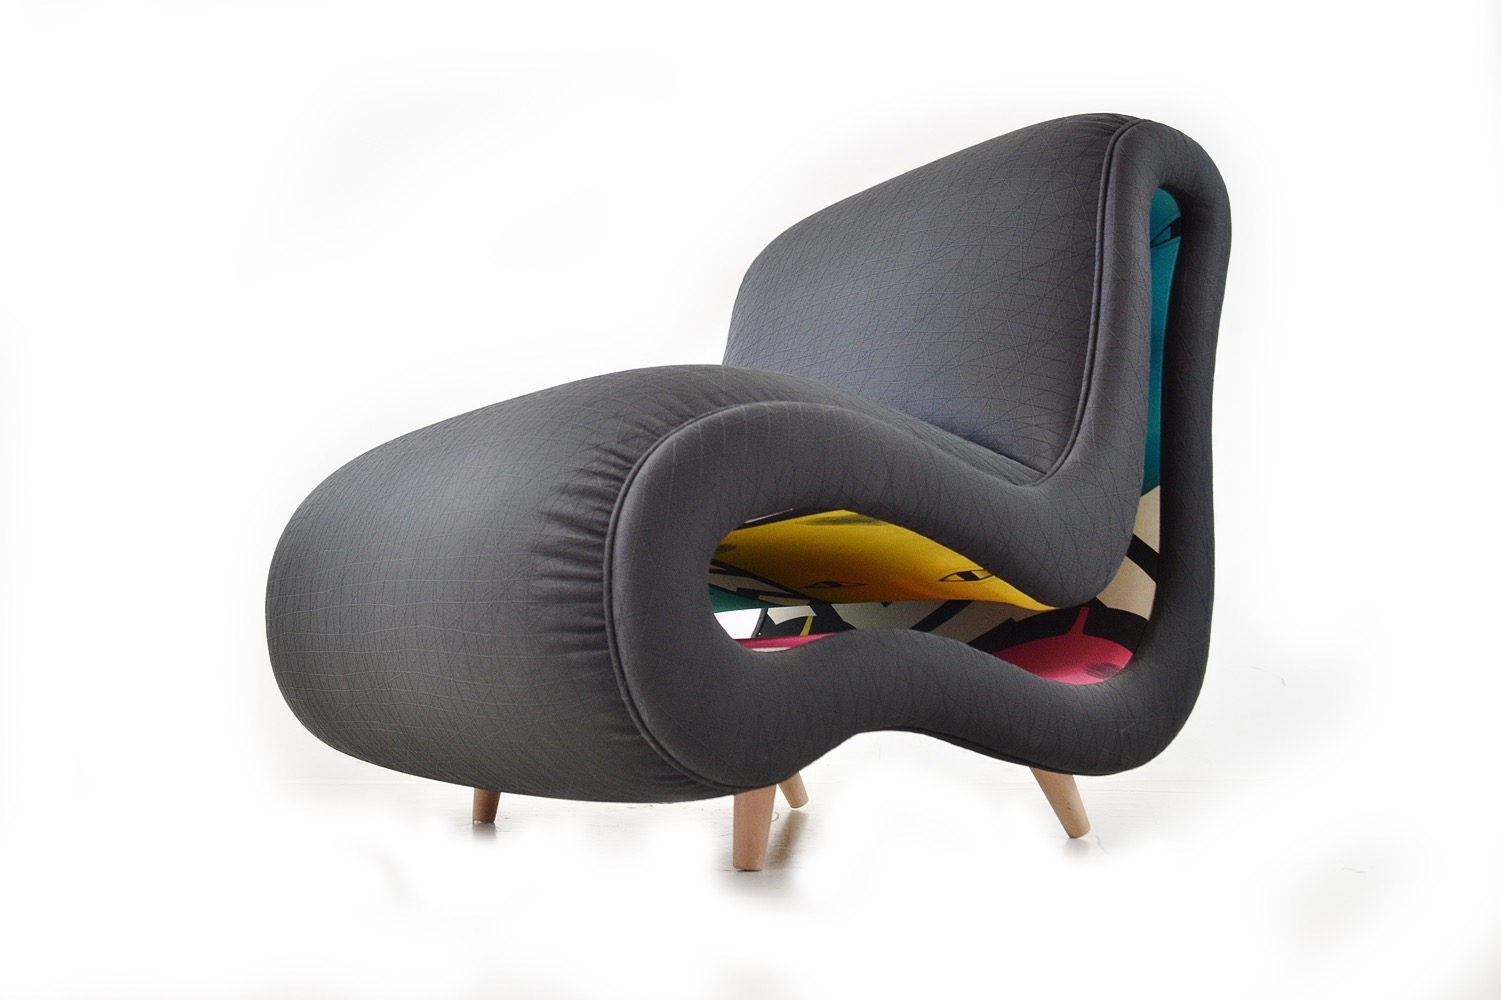 FAUTEUIL DESIGN ARTISAN LUXE ANNECY